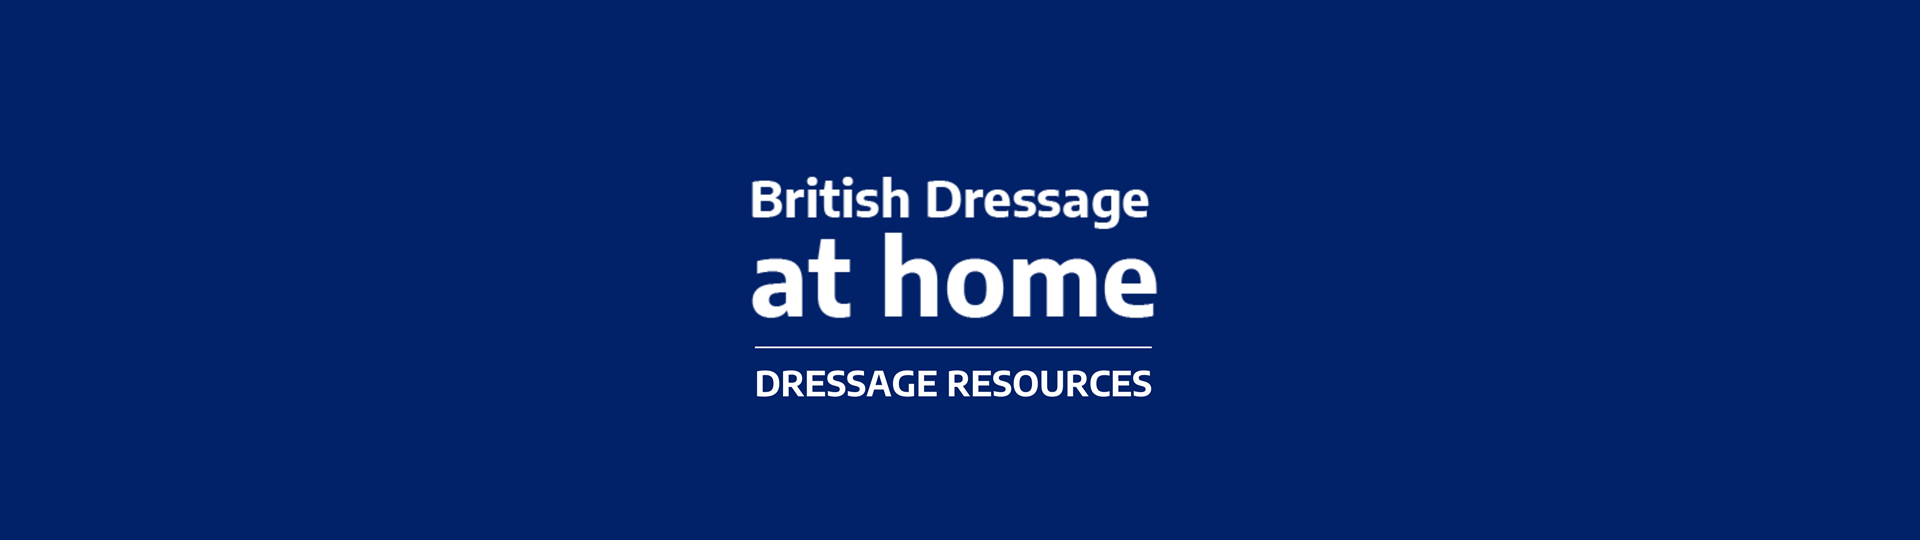 BD At Home Dressage Resources Banner